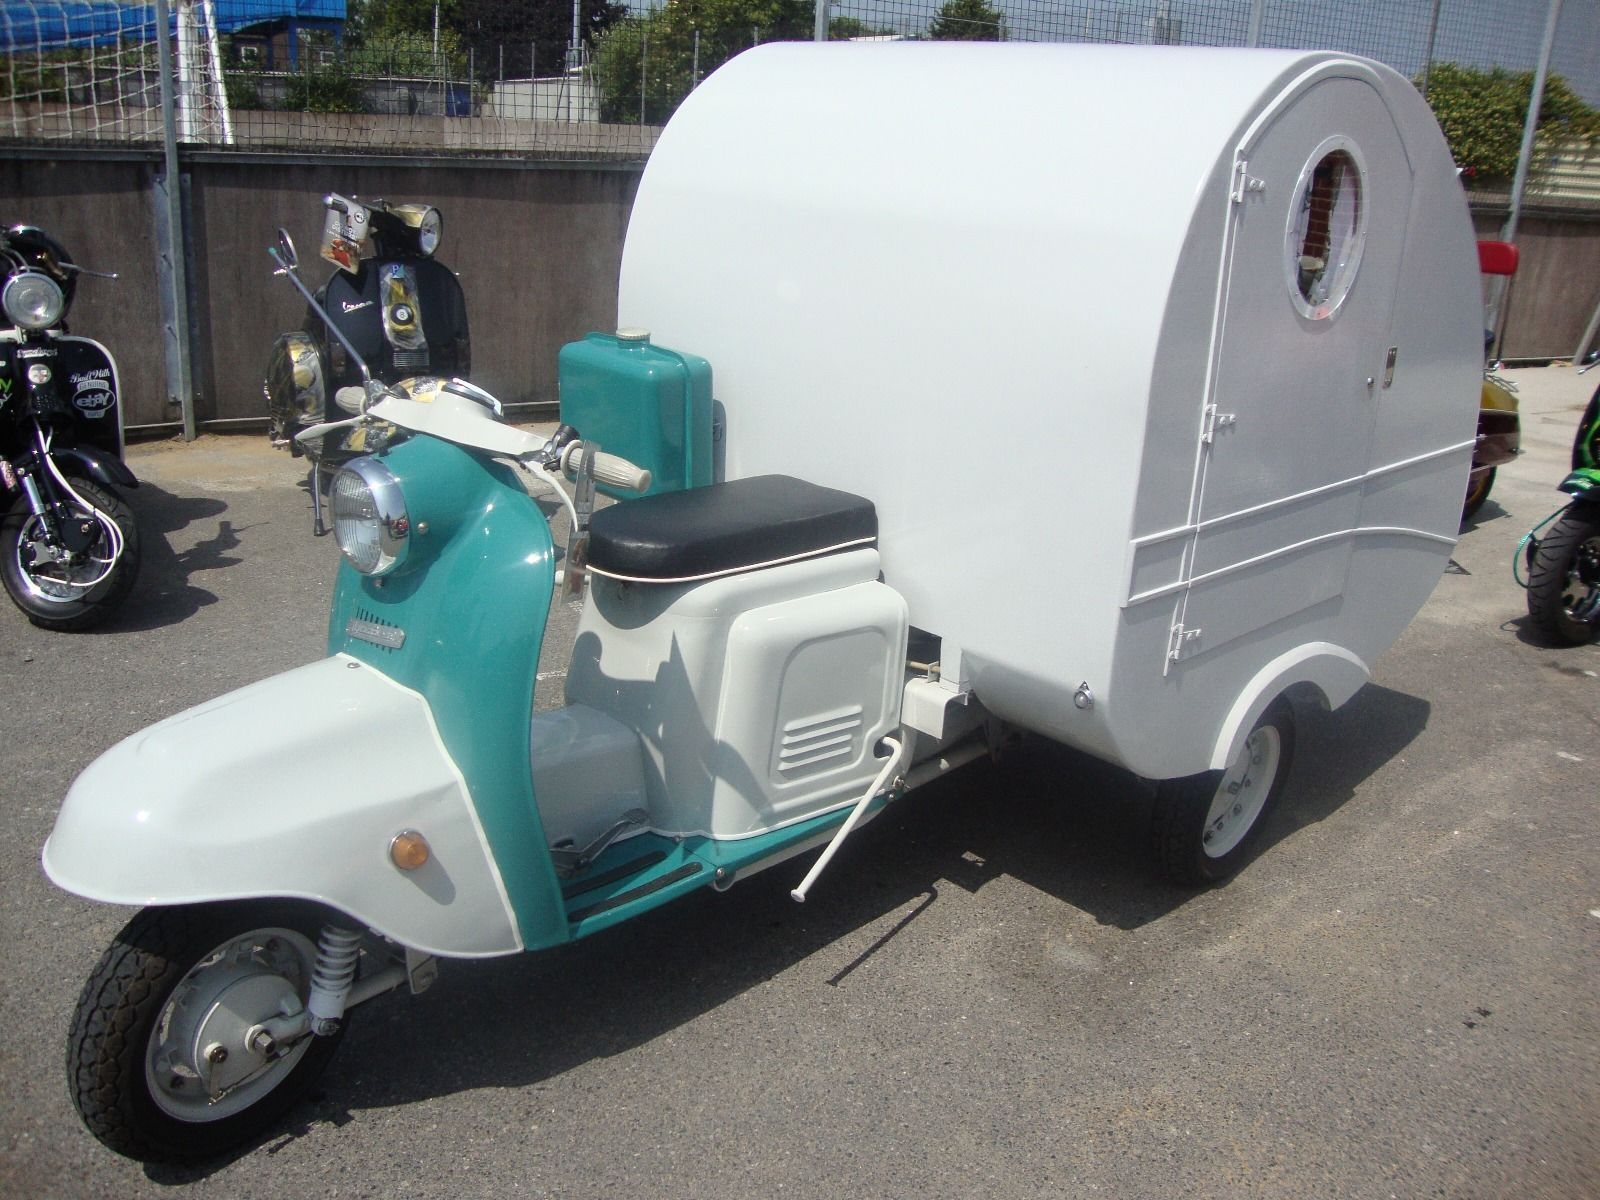 scooter caravan up for sale. Black Bedroom Furniture Sets. Home Design Ideas